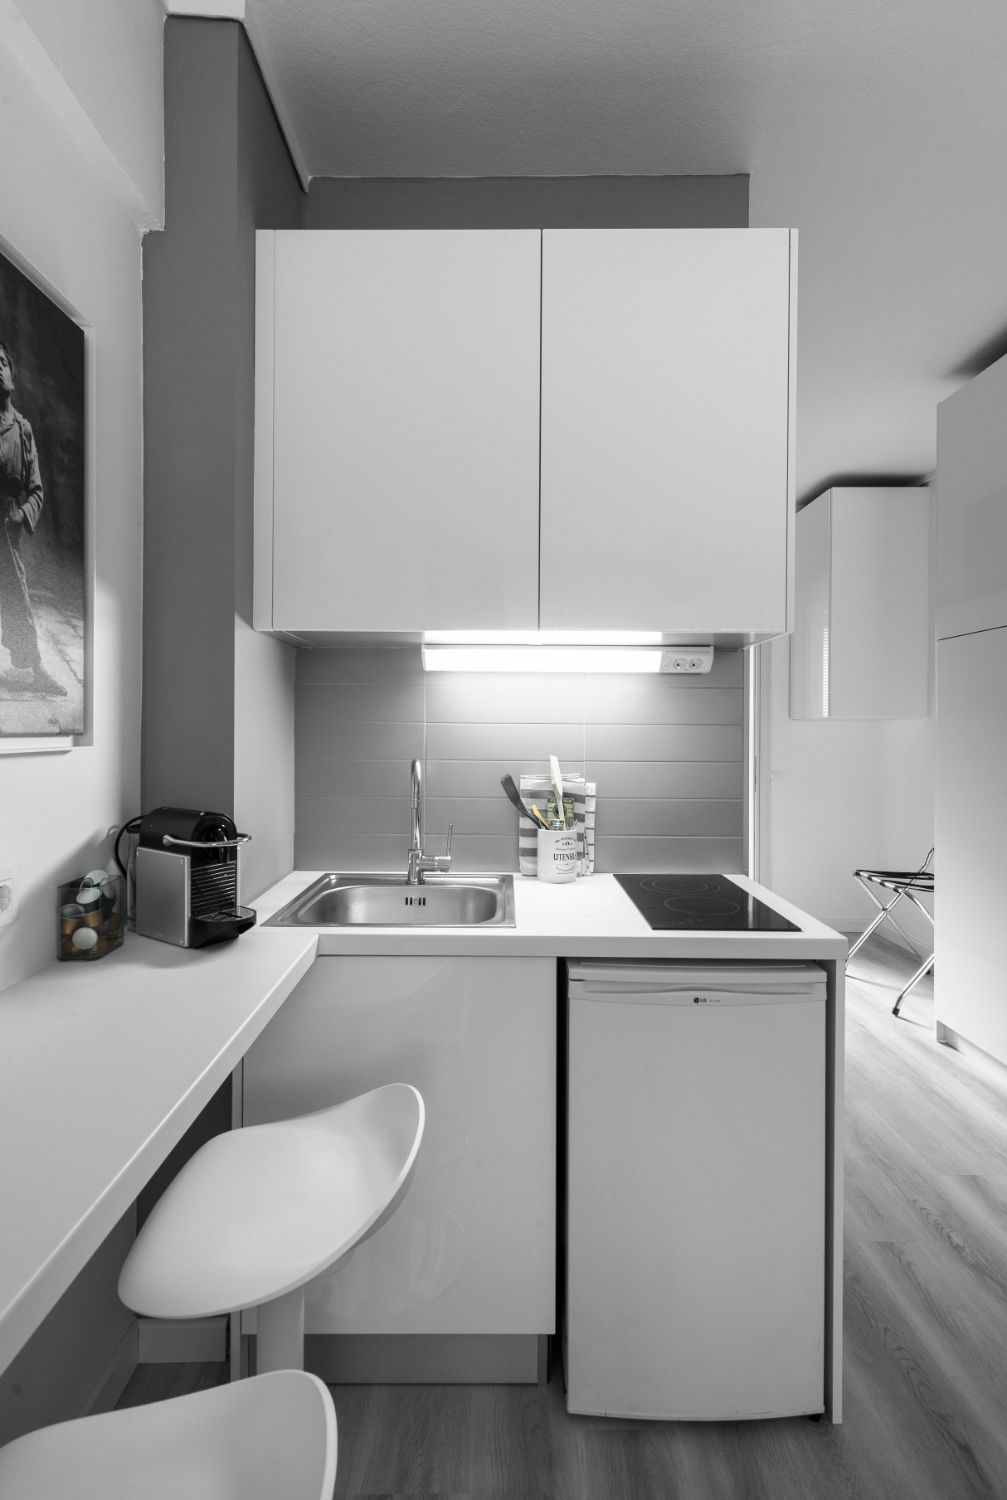 Suite #1, Kitchenette and Dining area